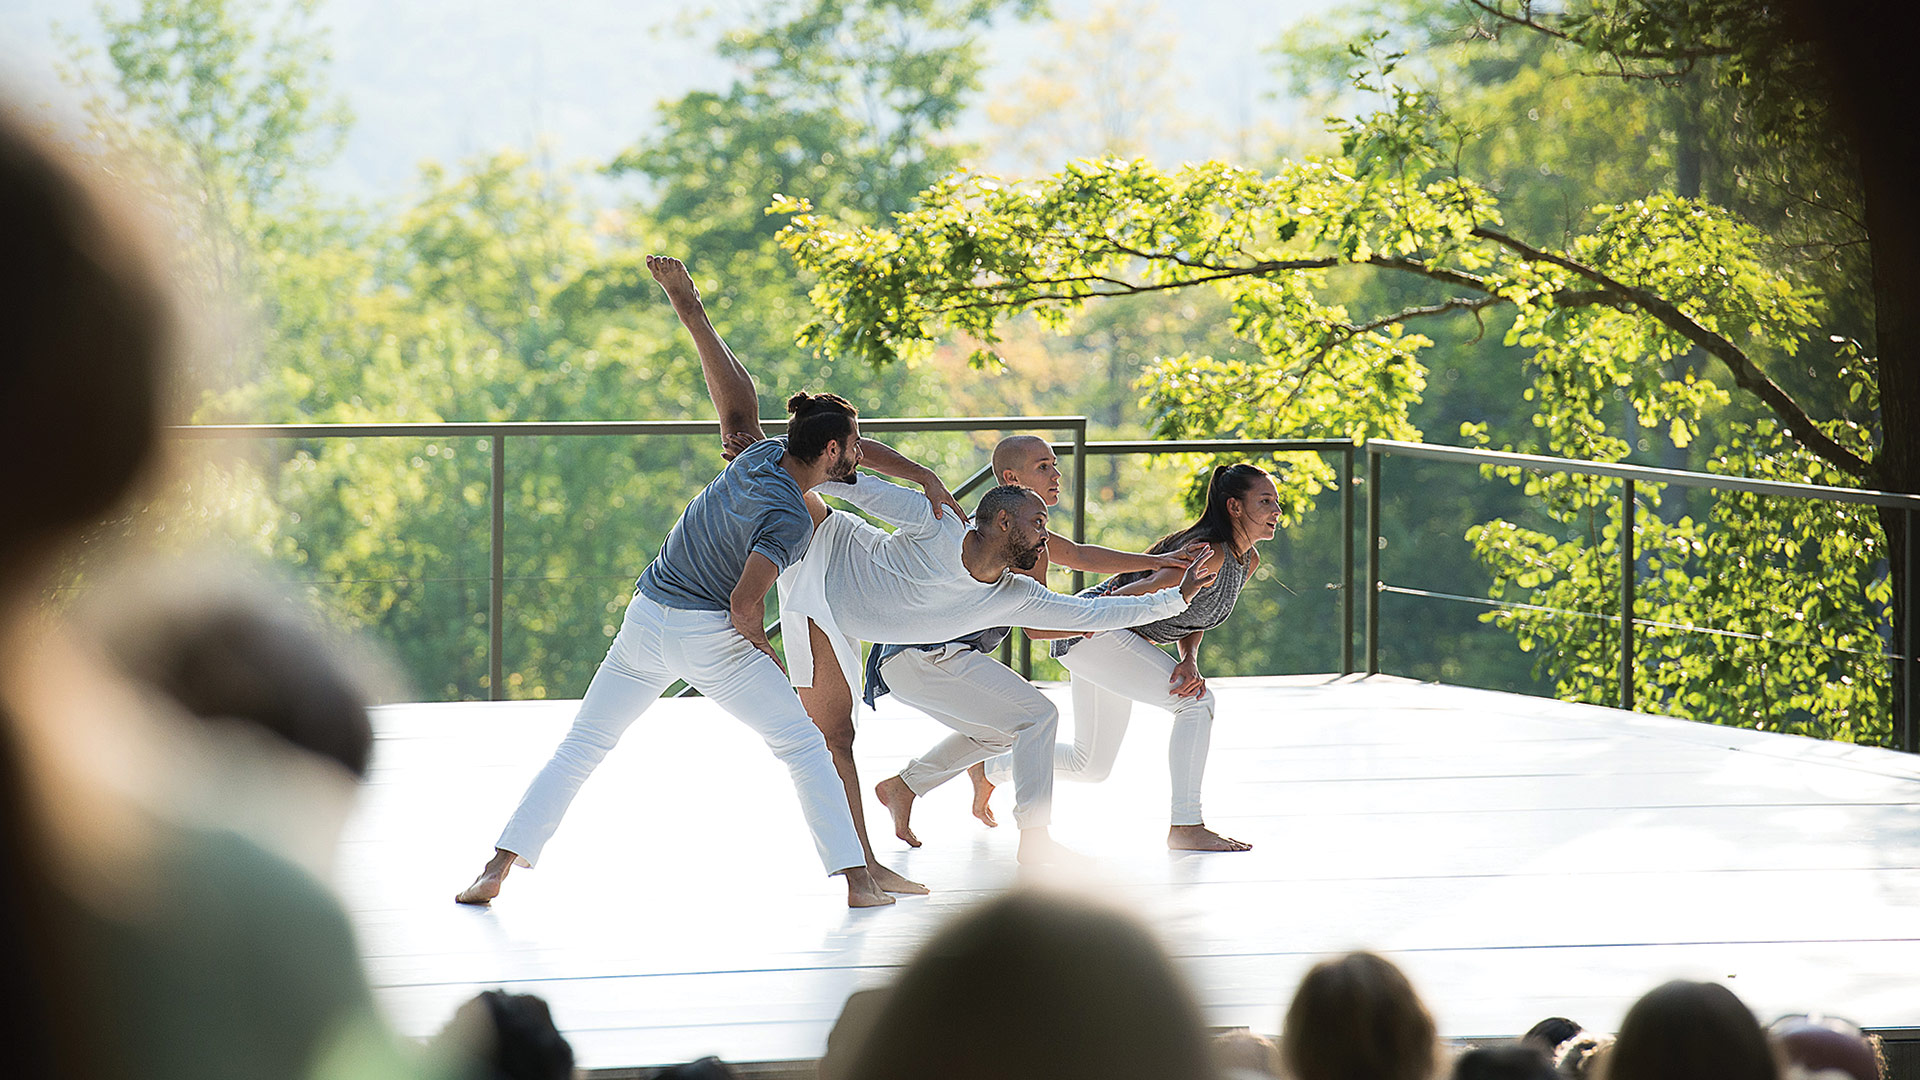 The productions at Jacob's Pillow